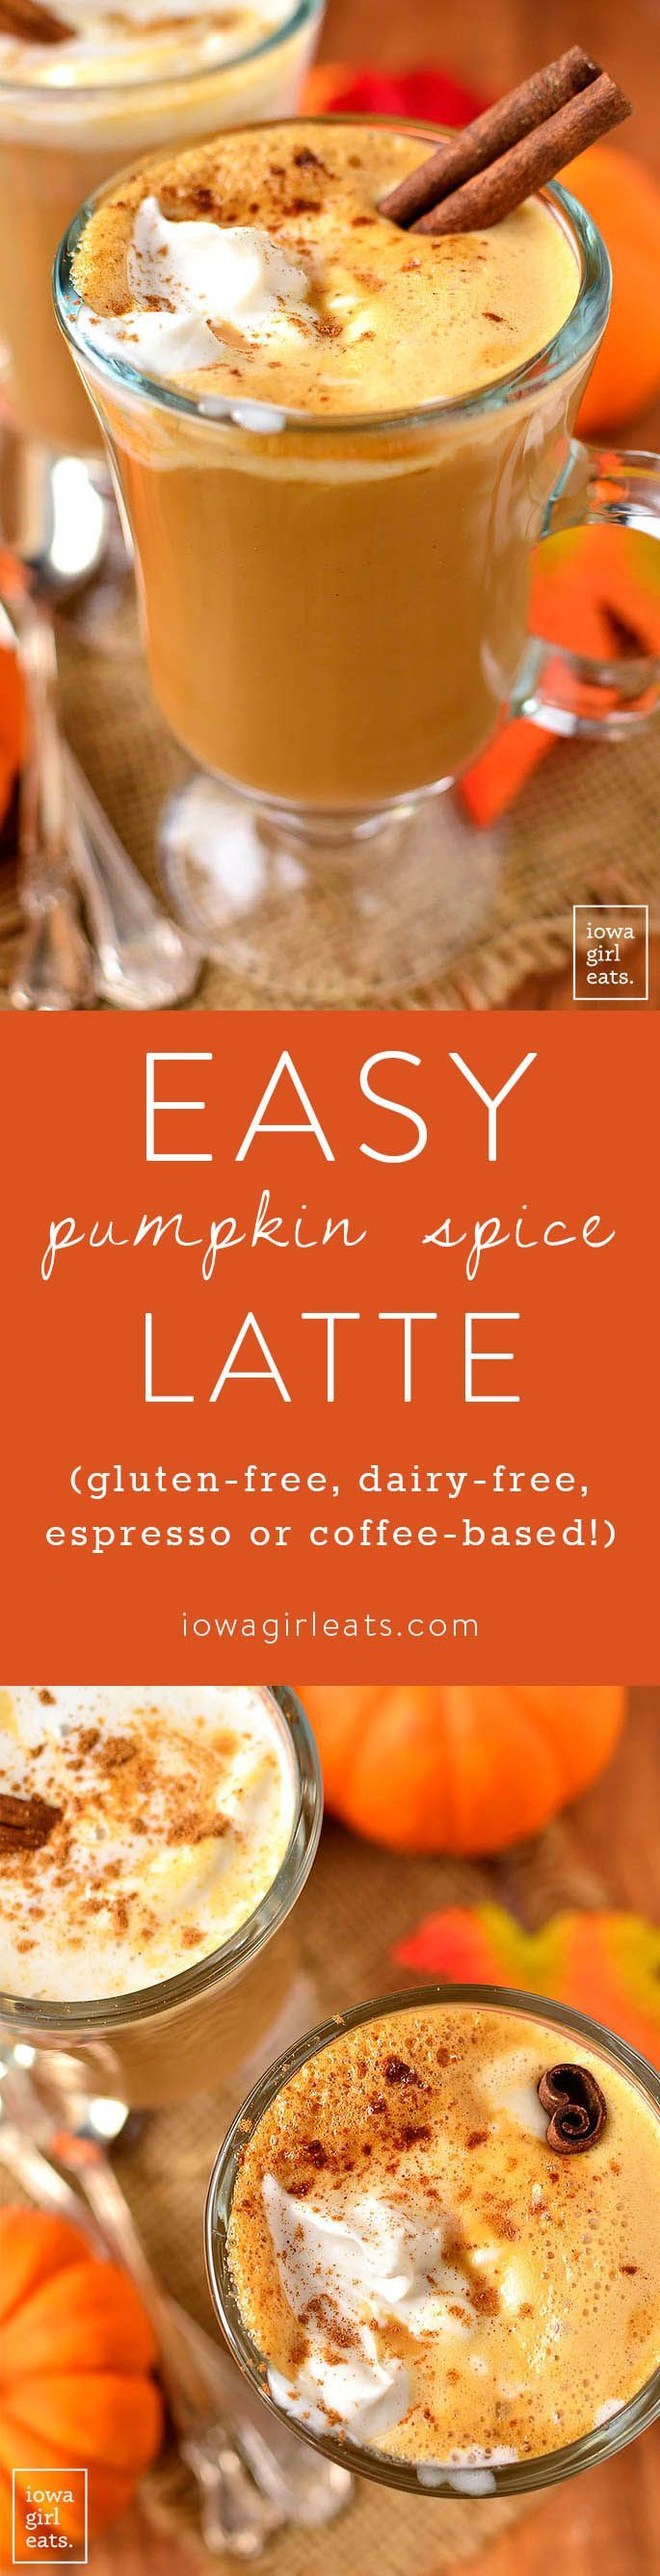 Save money and calories by making your own Pumpkin Spice Latte at home in 5 minutes or less! Use espresso, strong coffee, or keep it caffeine-free for a yummy, kid-friendly drink.  | iowagirleats.com